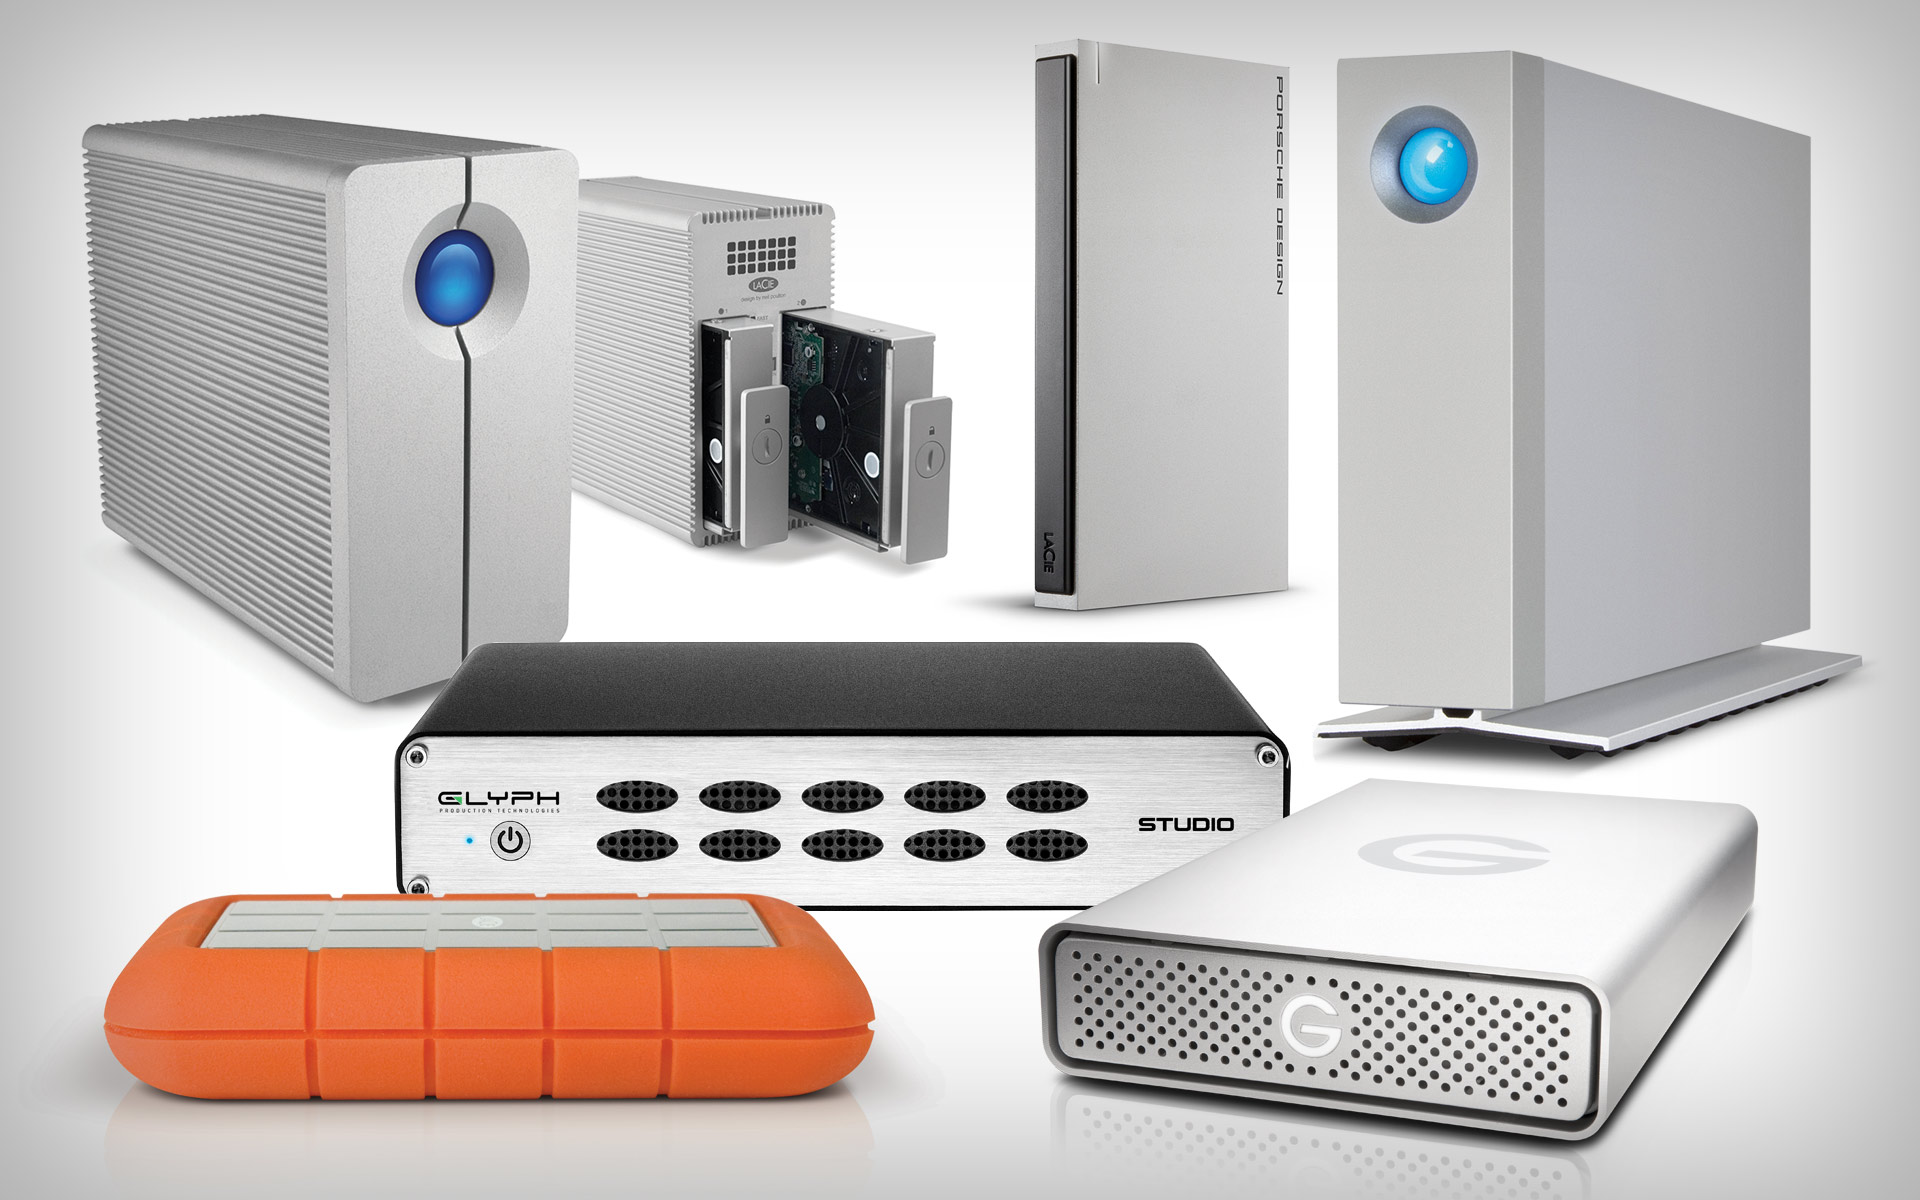 A selection of USB 3.0 Hard Drives